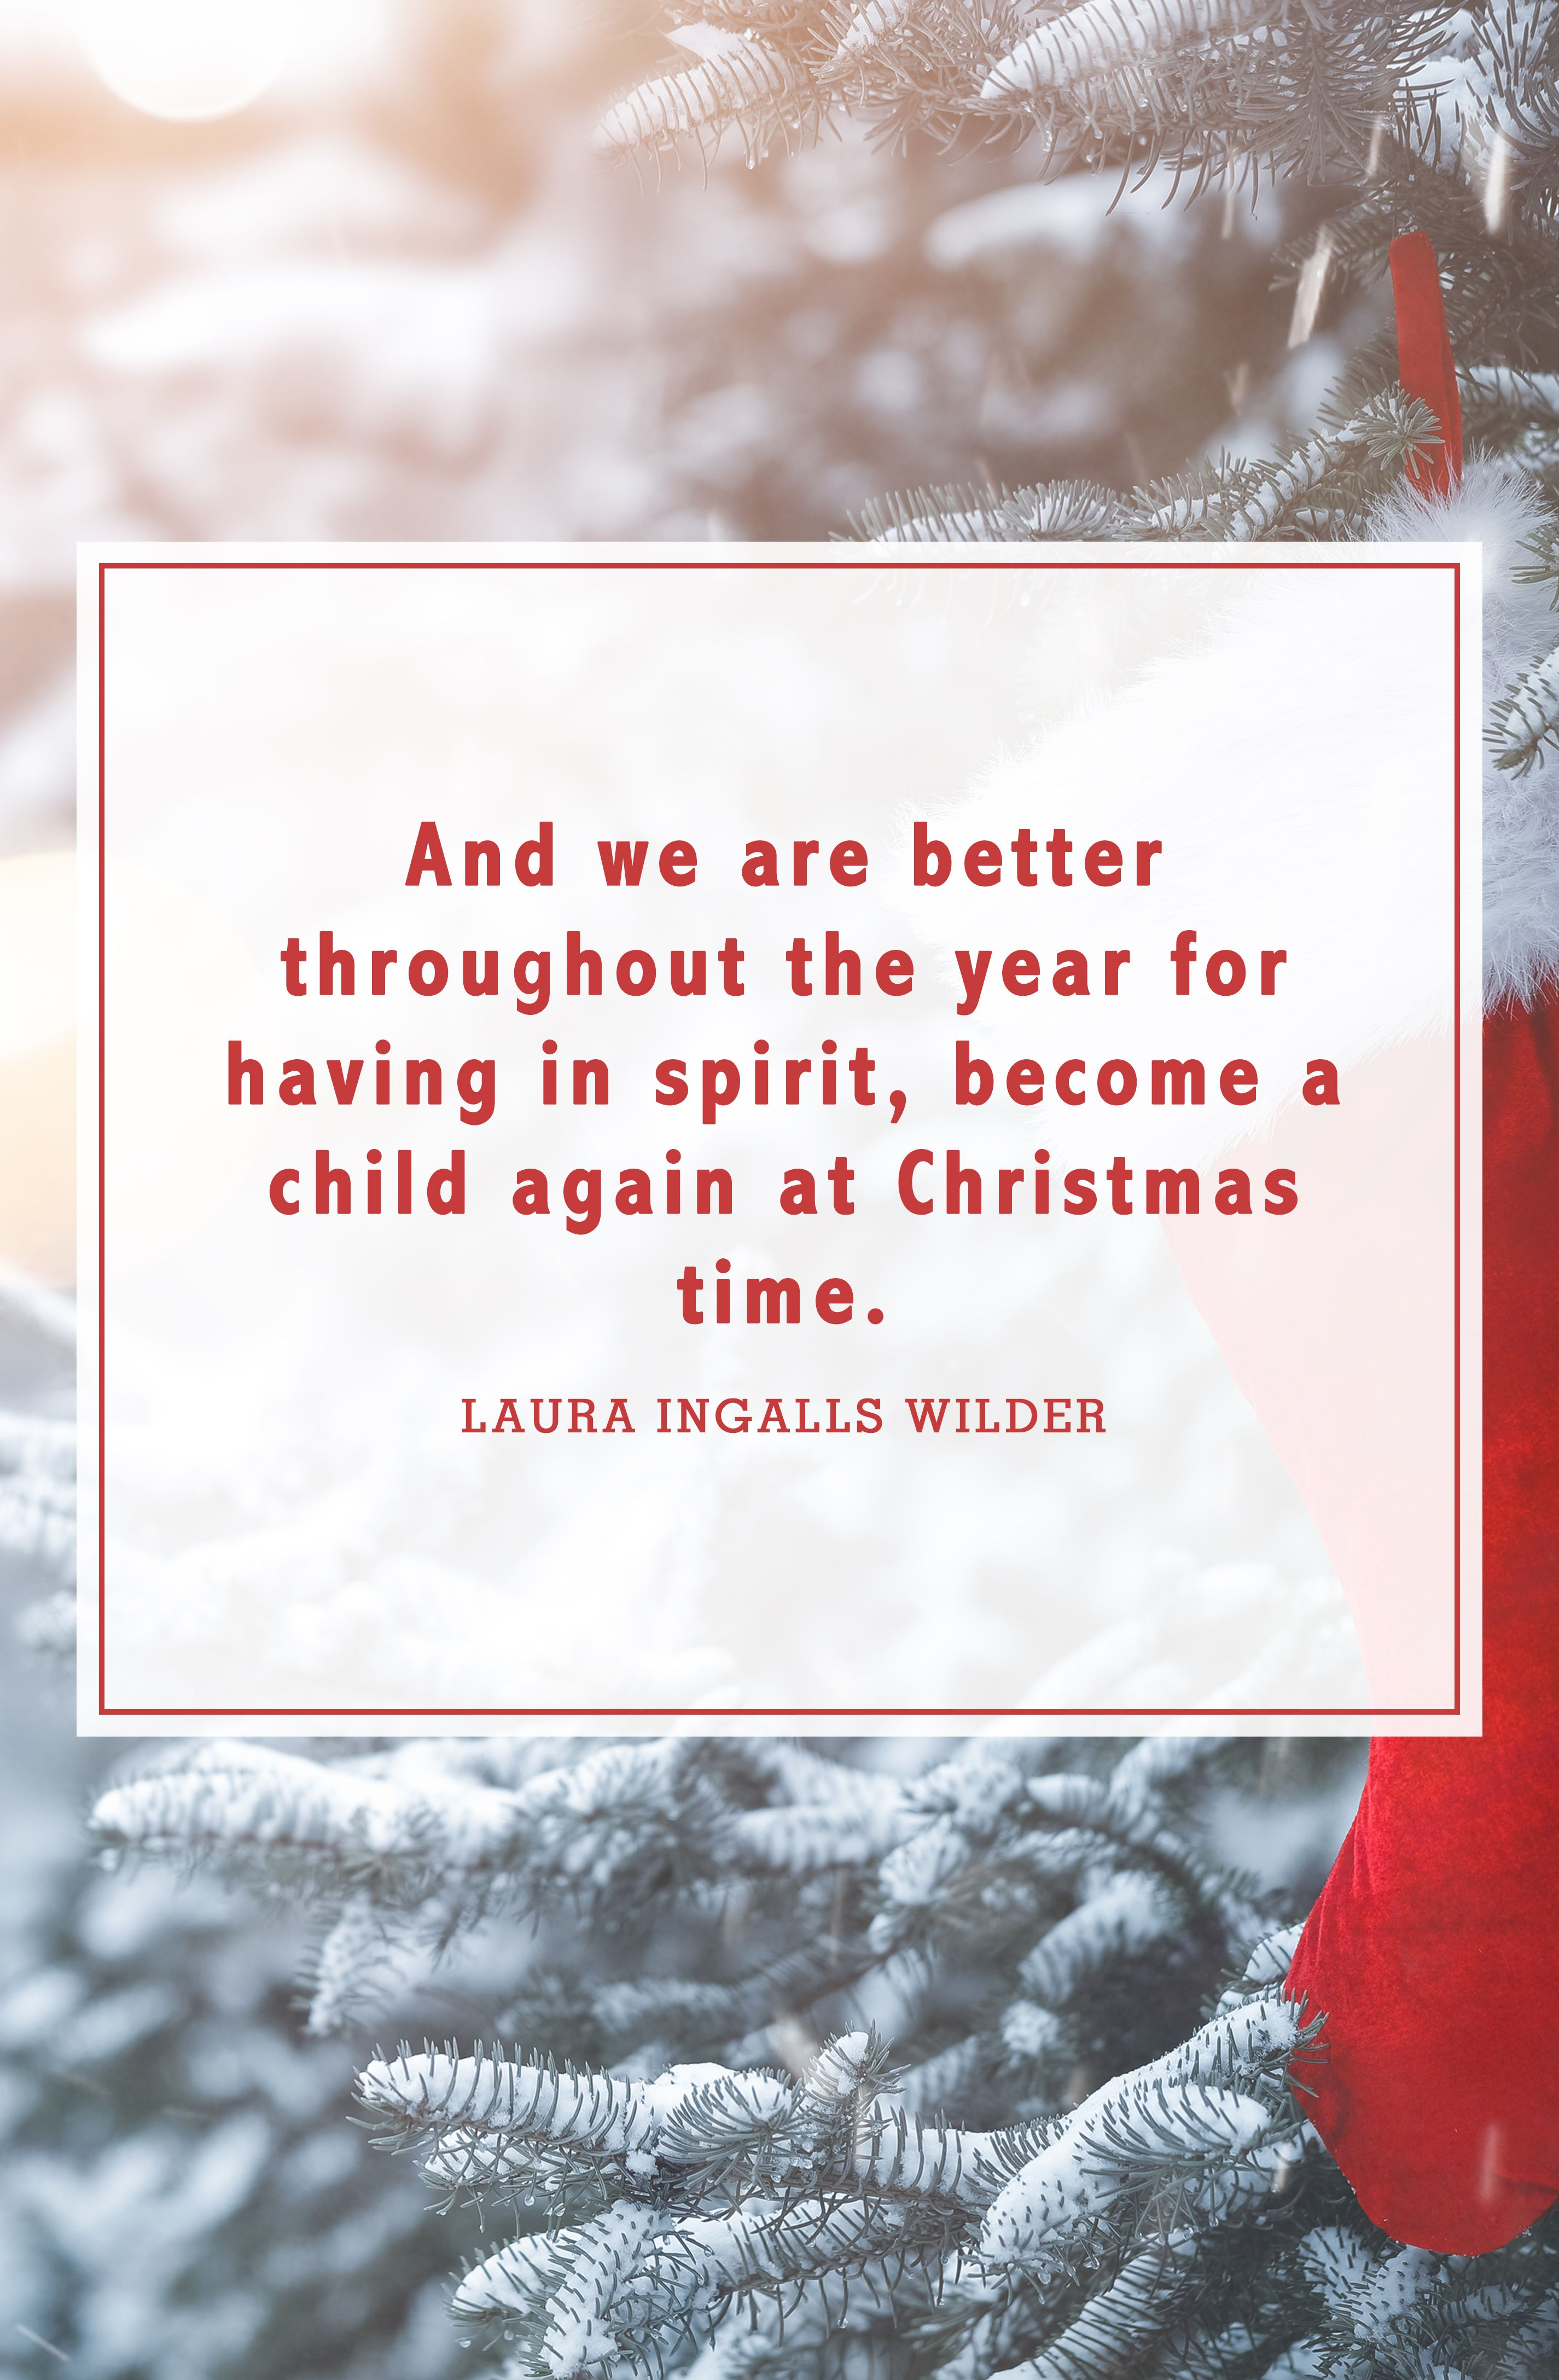 40 Best Christmas Quotes - Most Inspiring & Festive Holiday Sayings